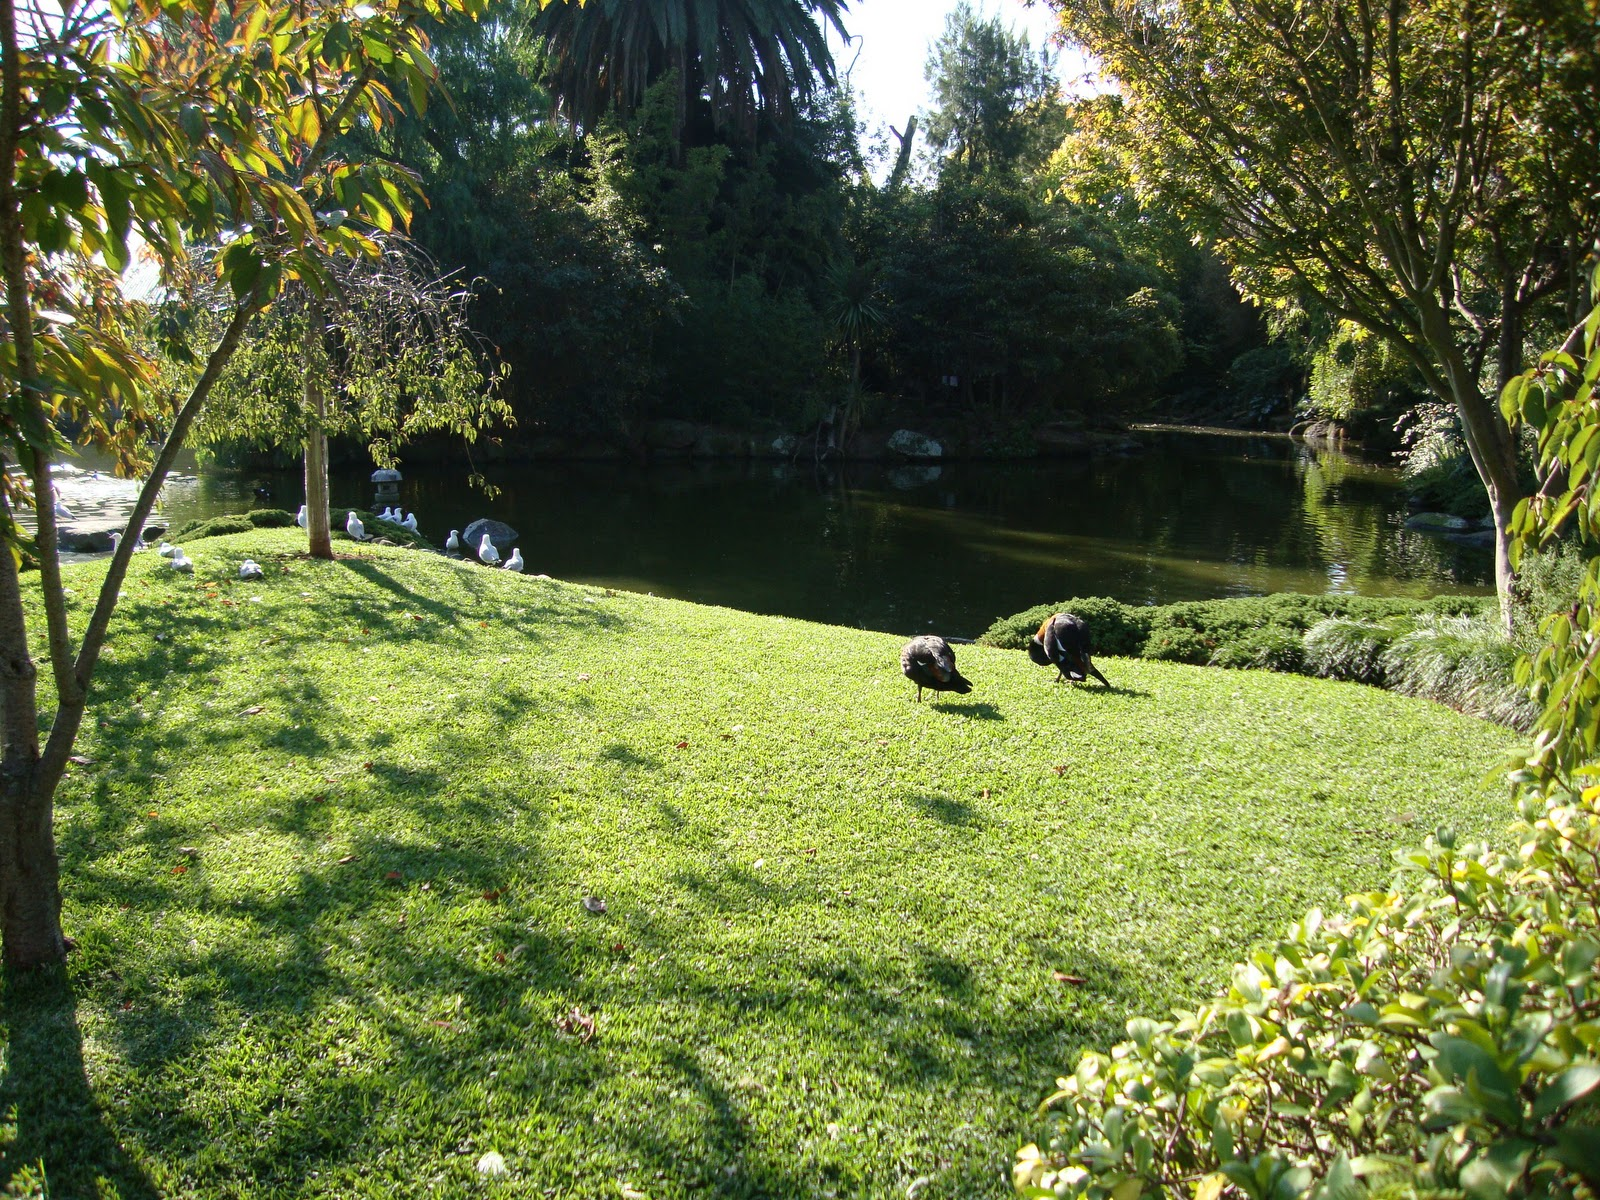 Article : The Melbourne Zoo a Tap To Nature ~ one for all and to share